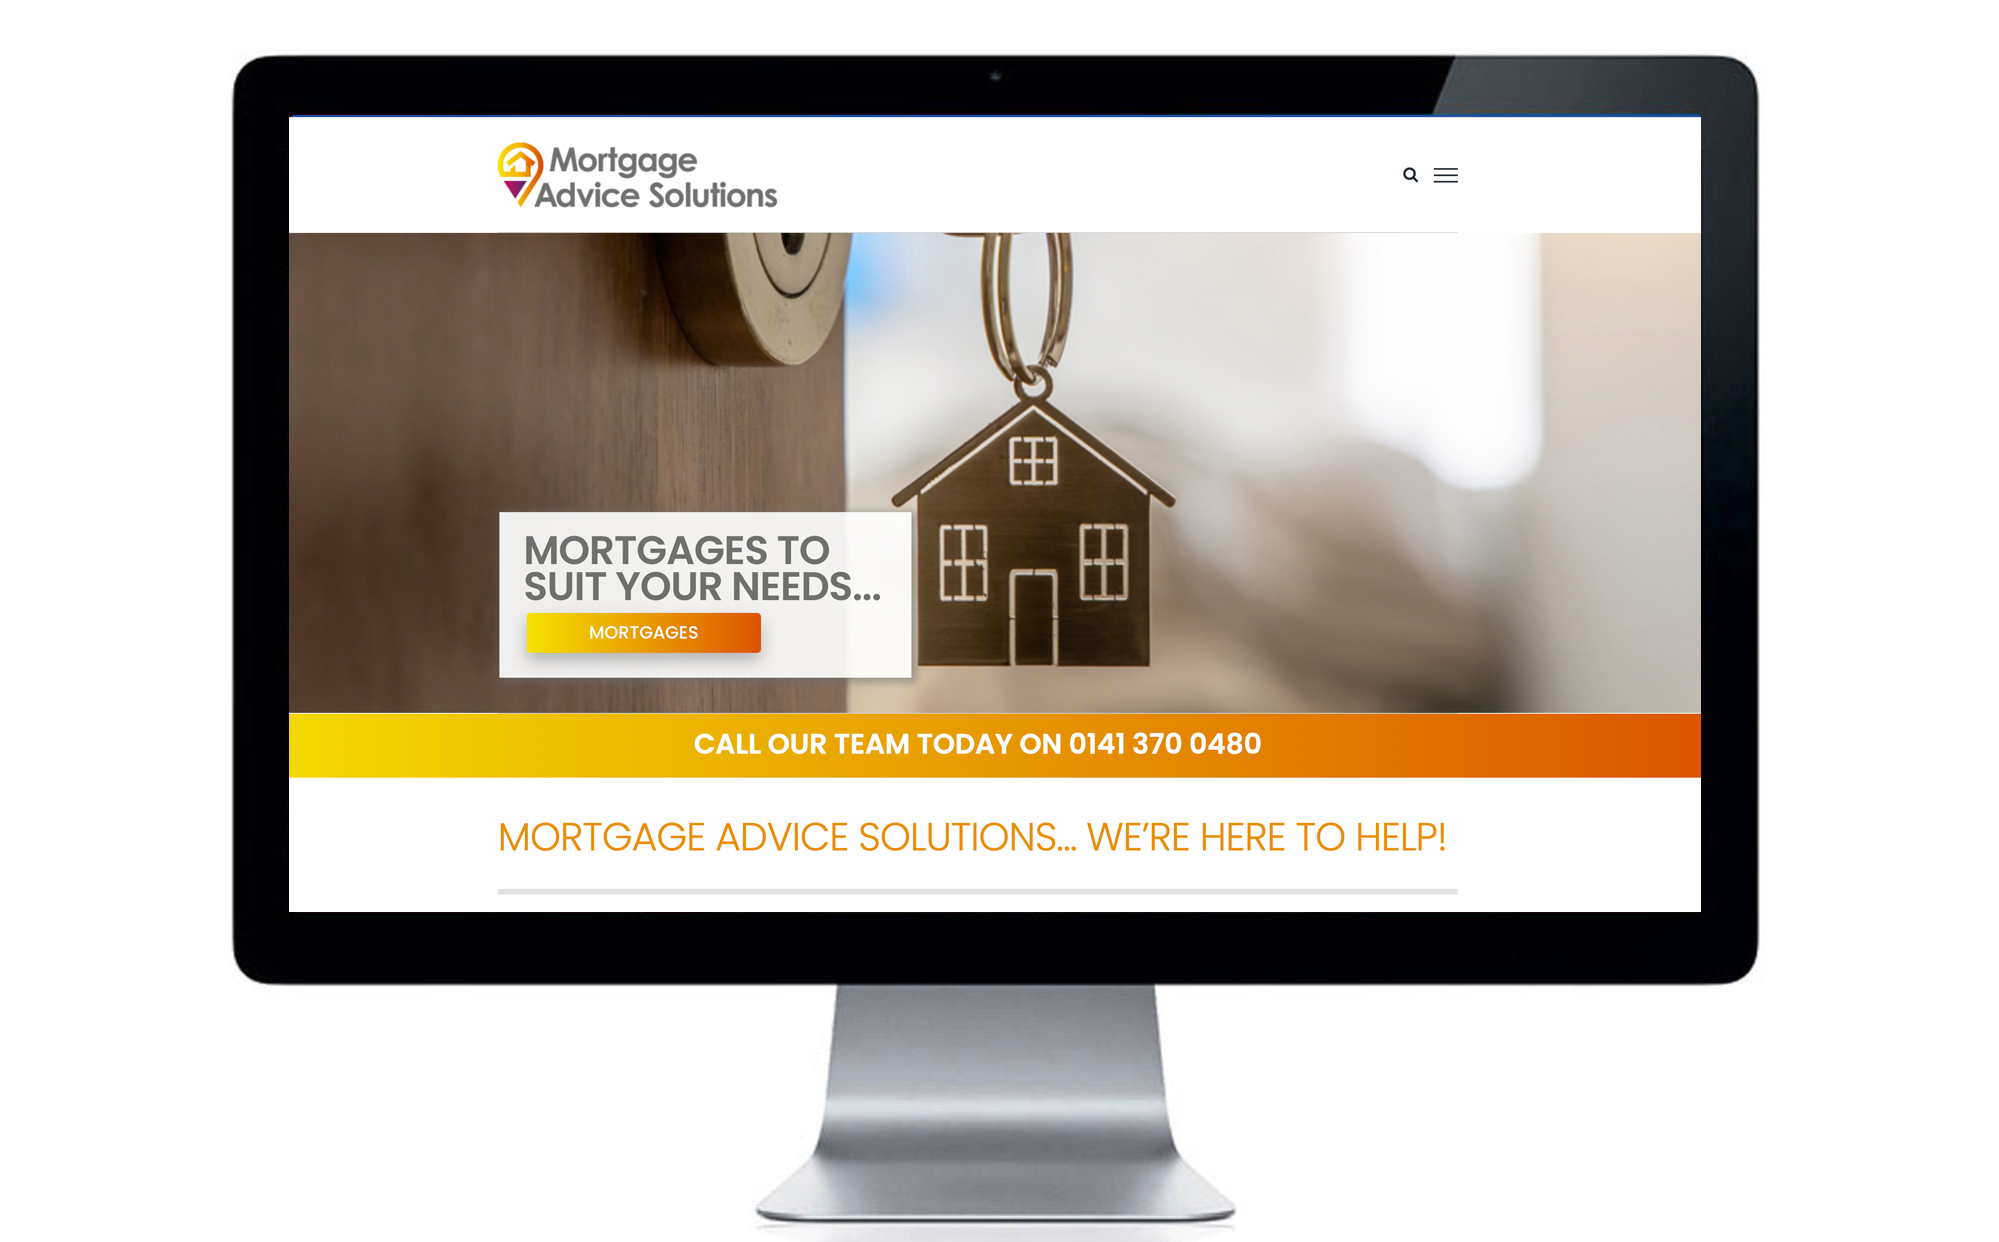 Mortgage Advice Solutions Website